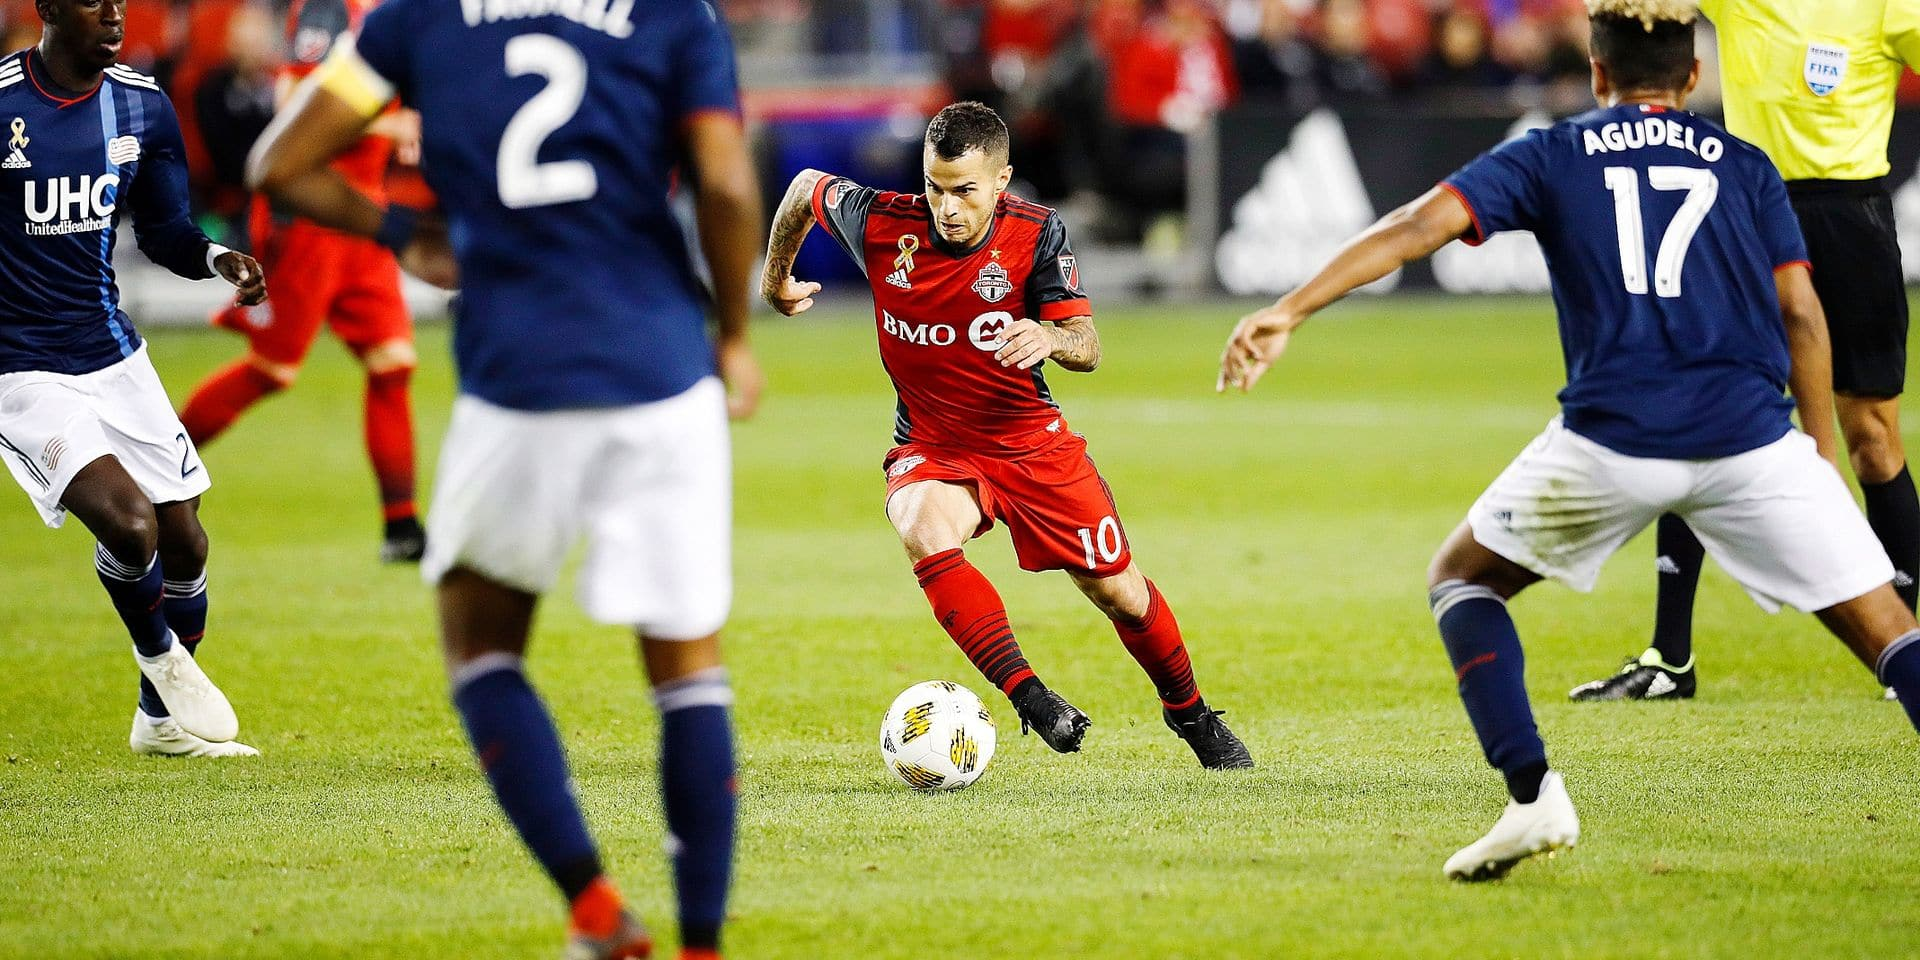 Toronto FC's Sebastian Giovinco moves the ball against the New England Revolution during the first half of a MLS soccer game, Saturday, Sept. 29, 2018 in Toronto. (Mark Blinch/The Canadian Press via AP)